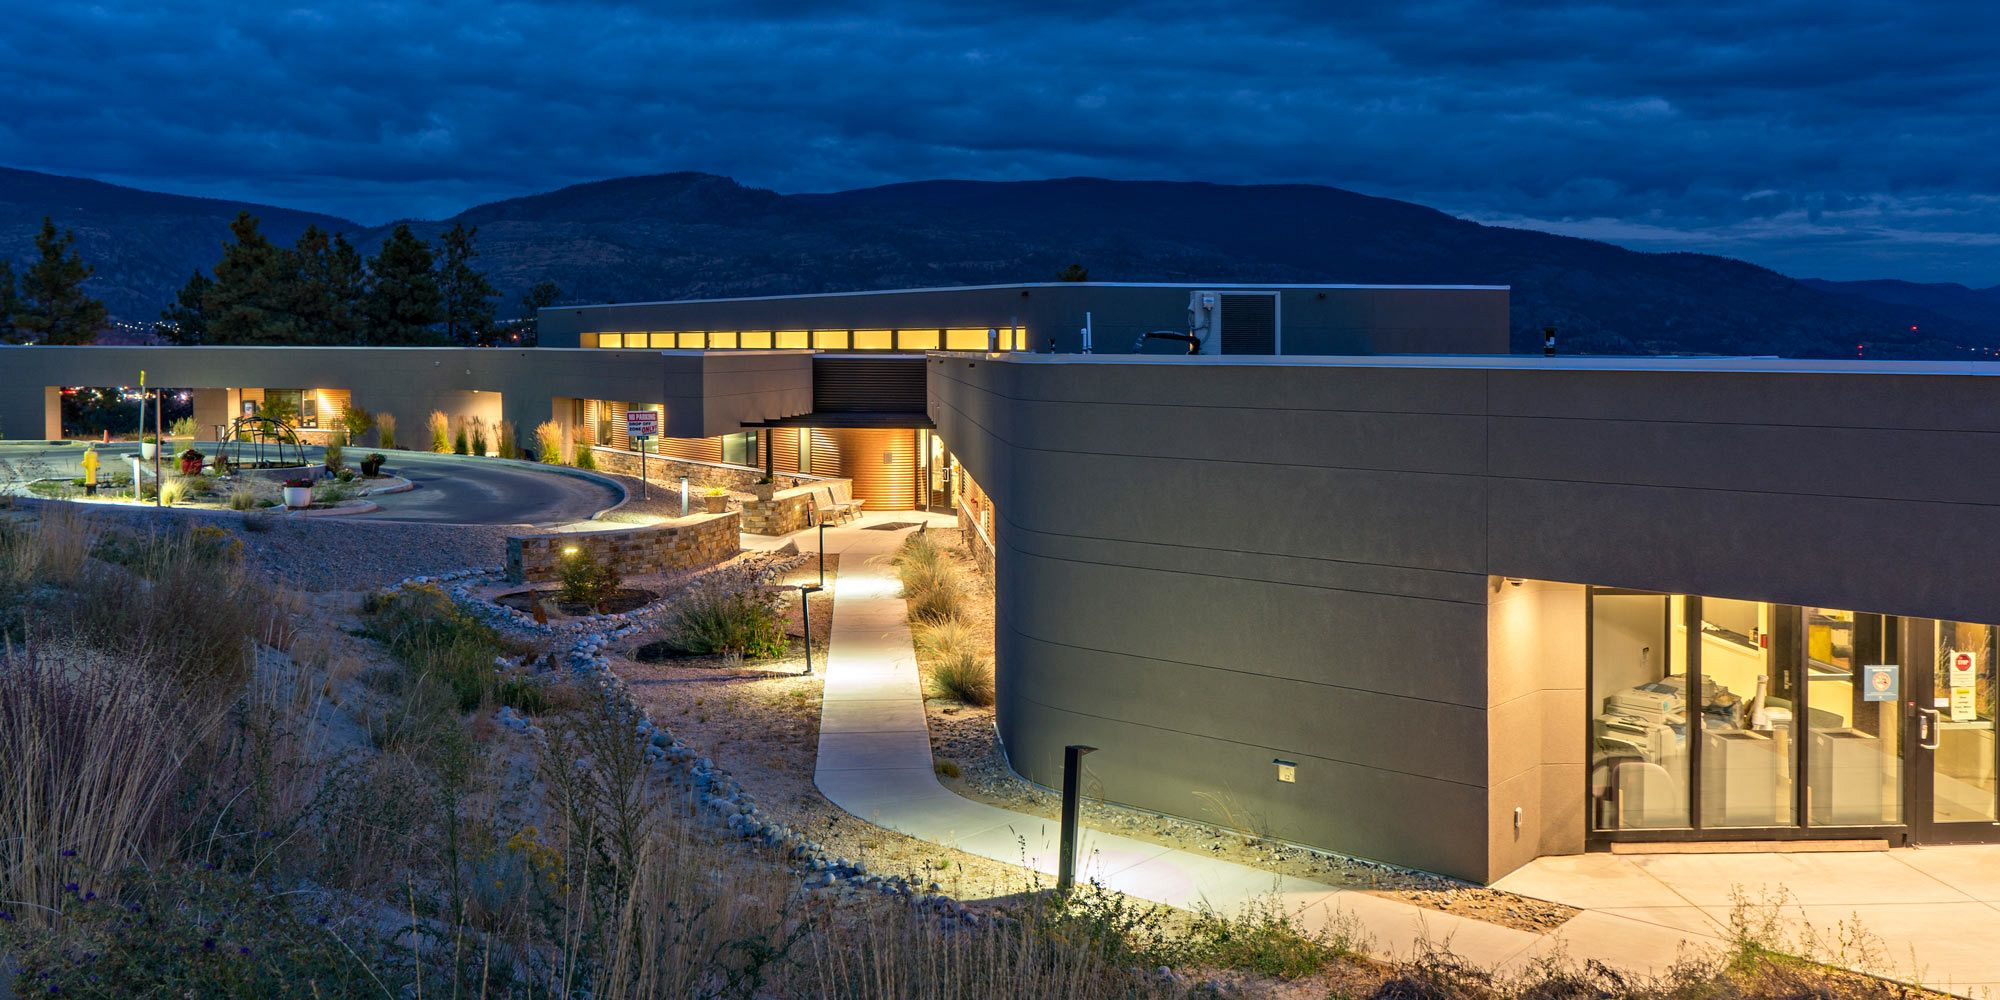 Penticton Indian Band Health Centre